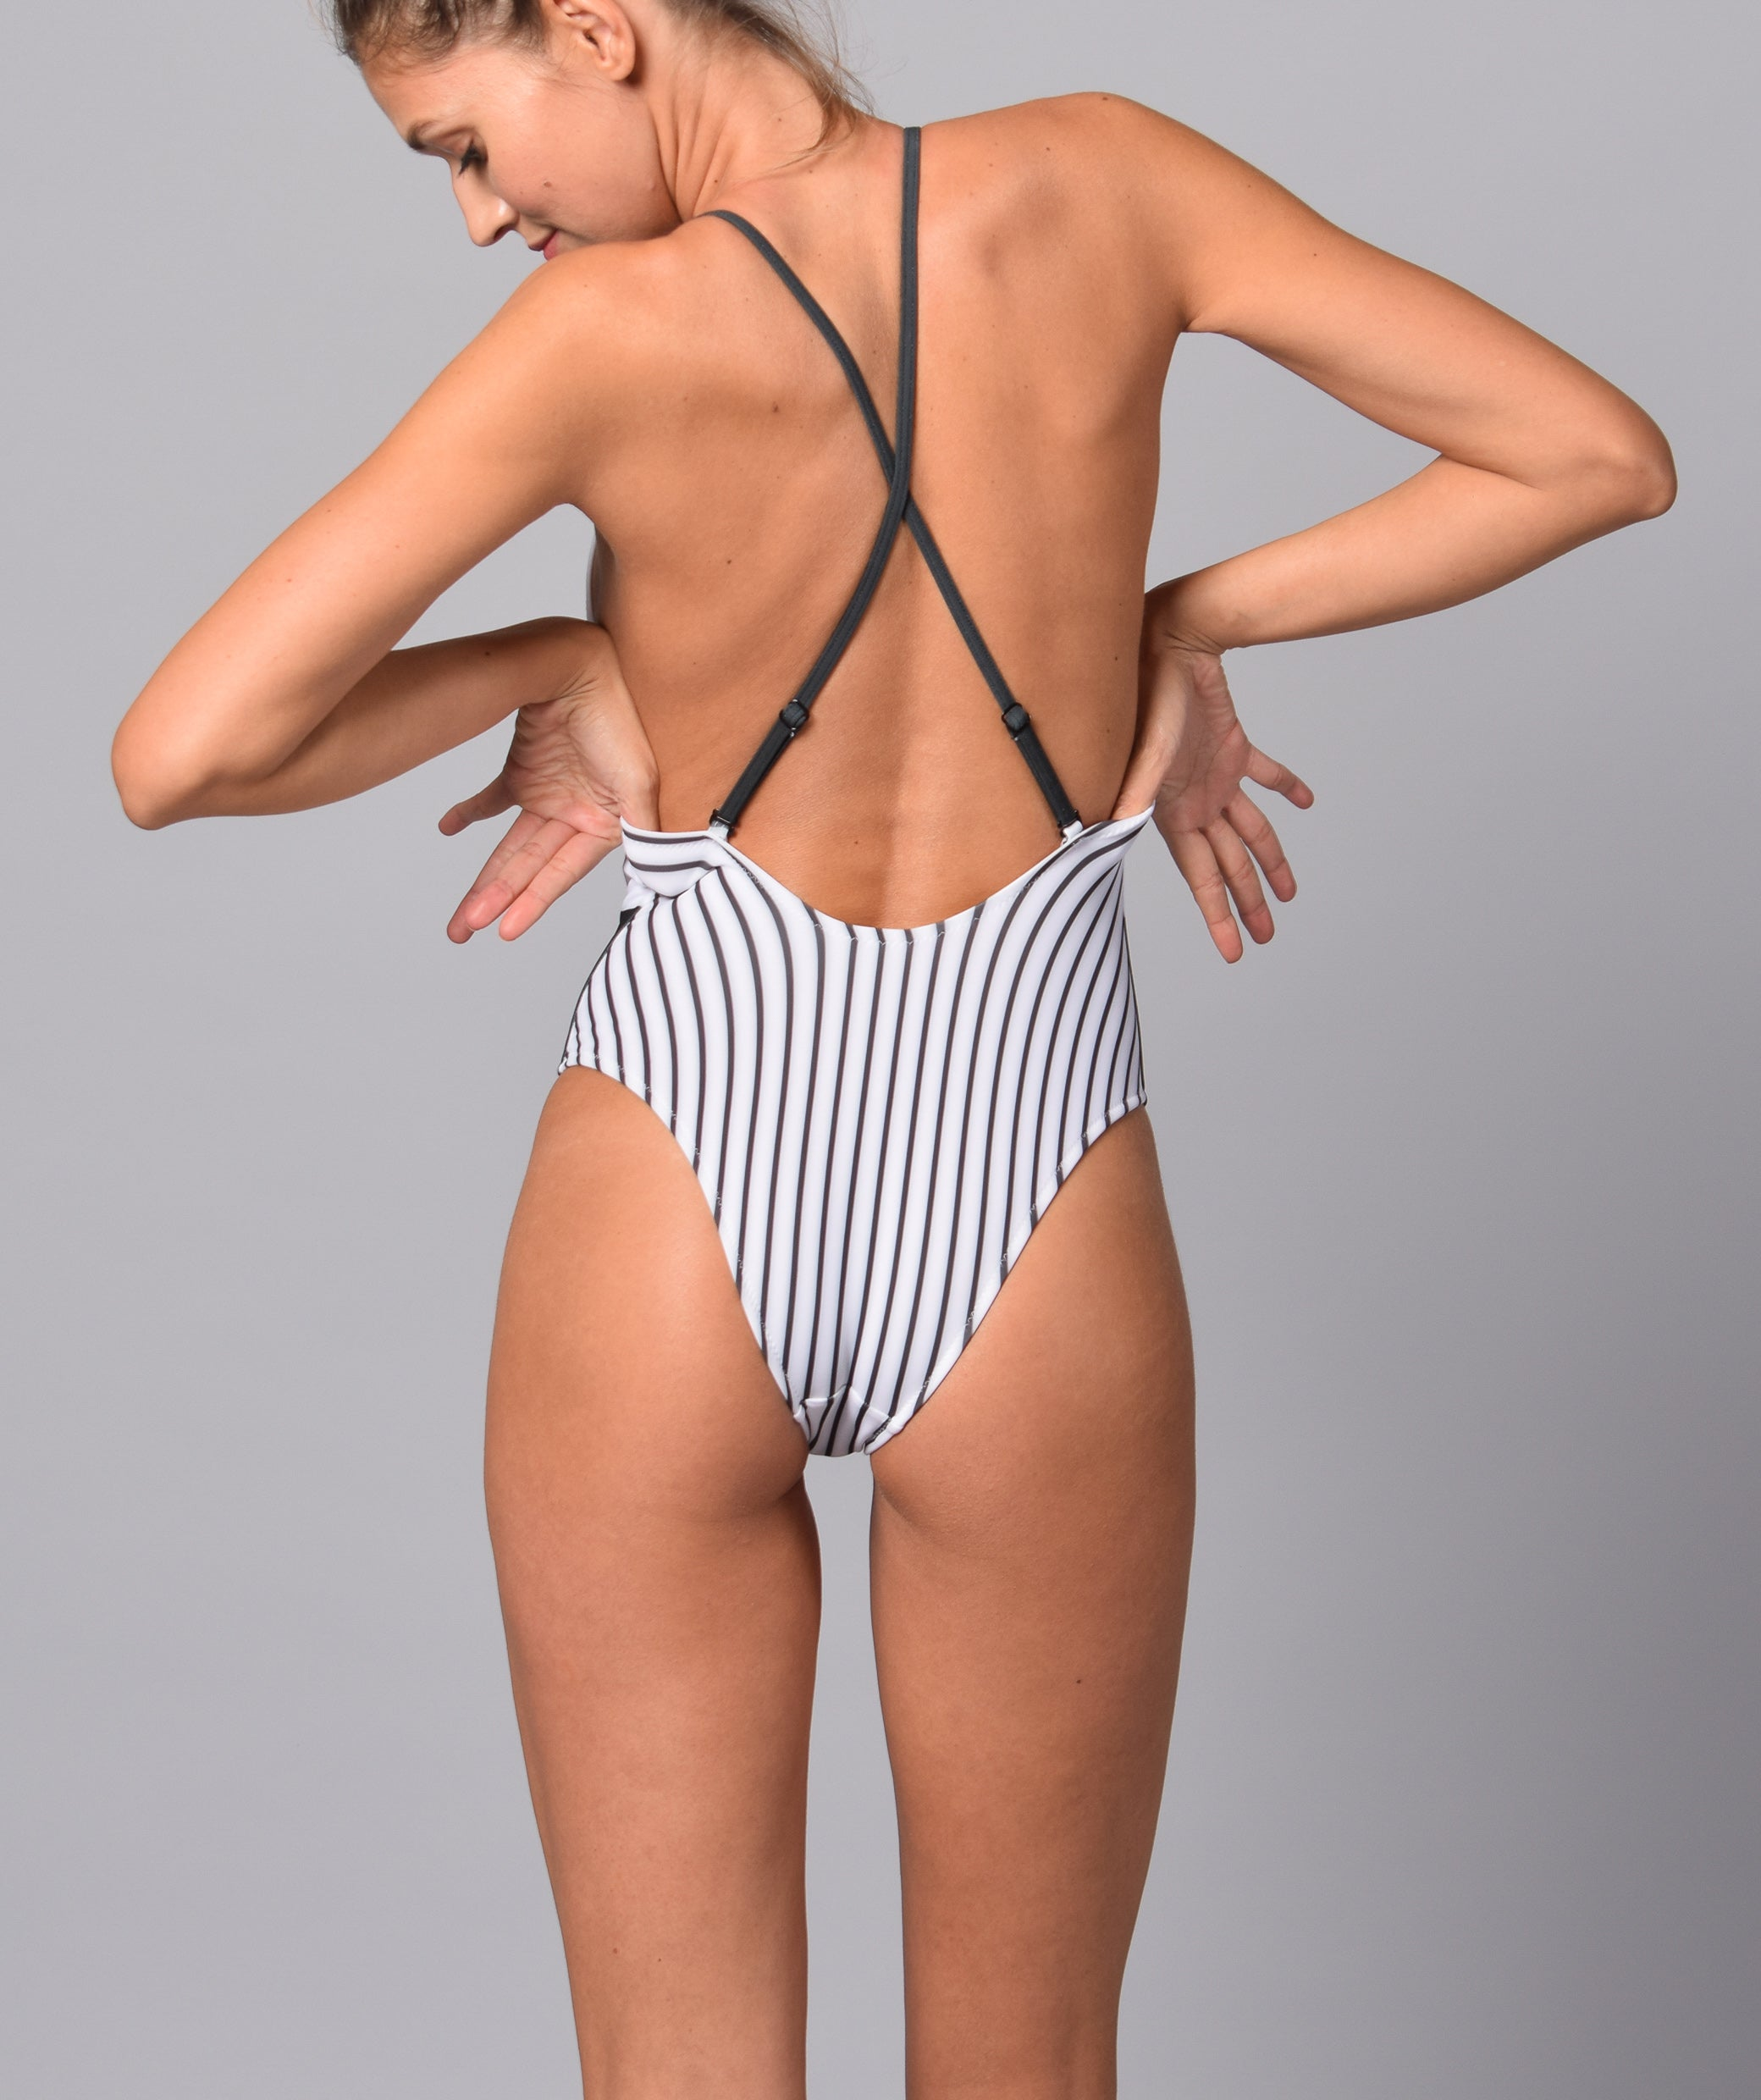 Boogaloo Girl wearing One-Piece Swimsuit NINITO Cross Back - Back